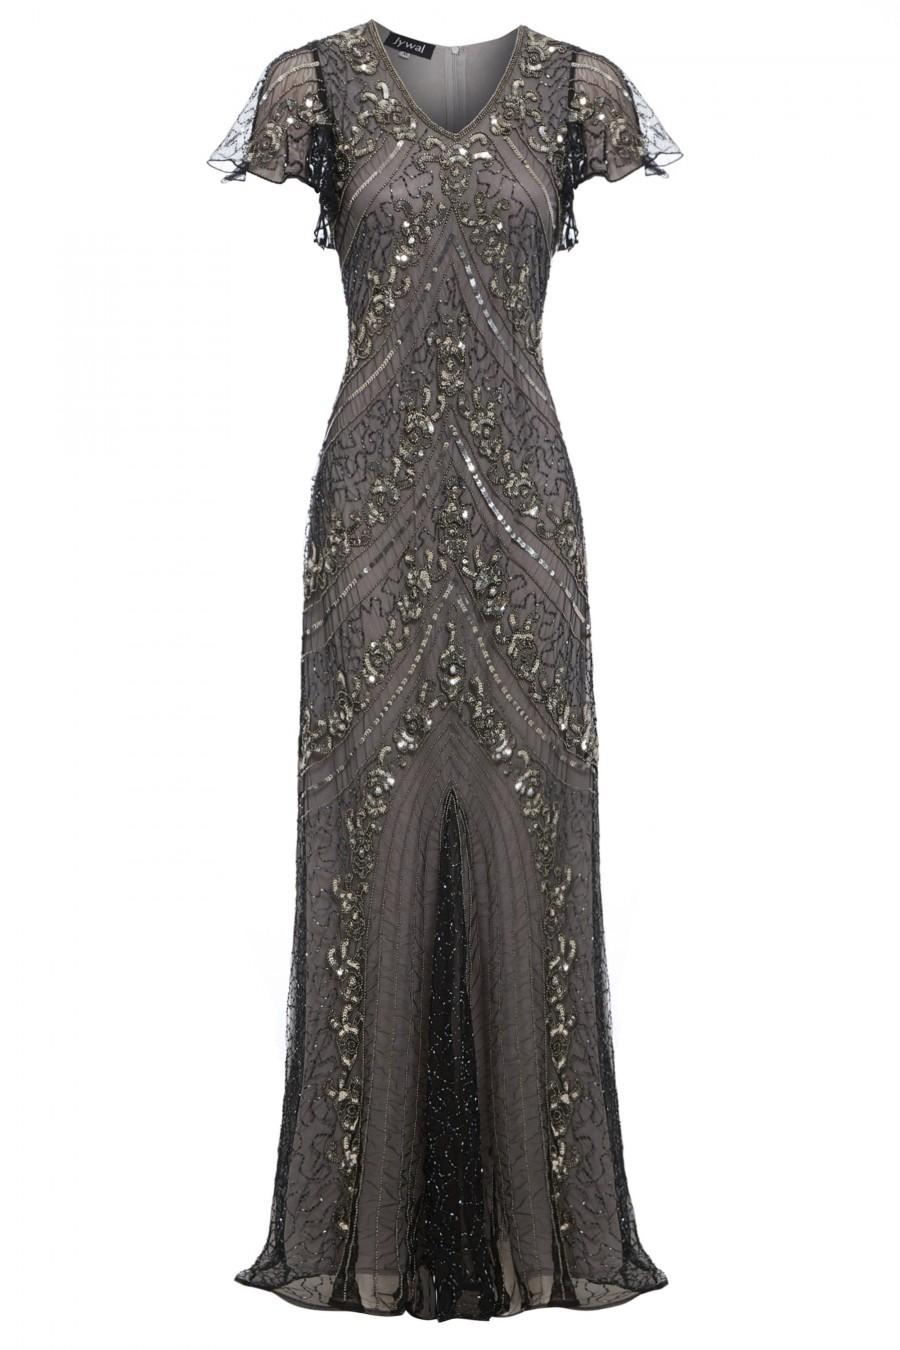 Lima Embellished Flapper Dress, 1920s Great Gatsby Inspired, Downton ...